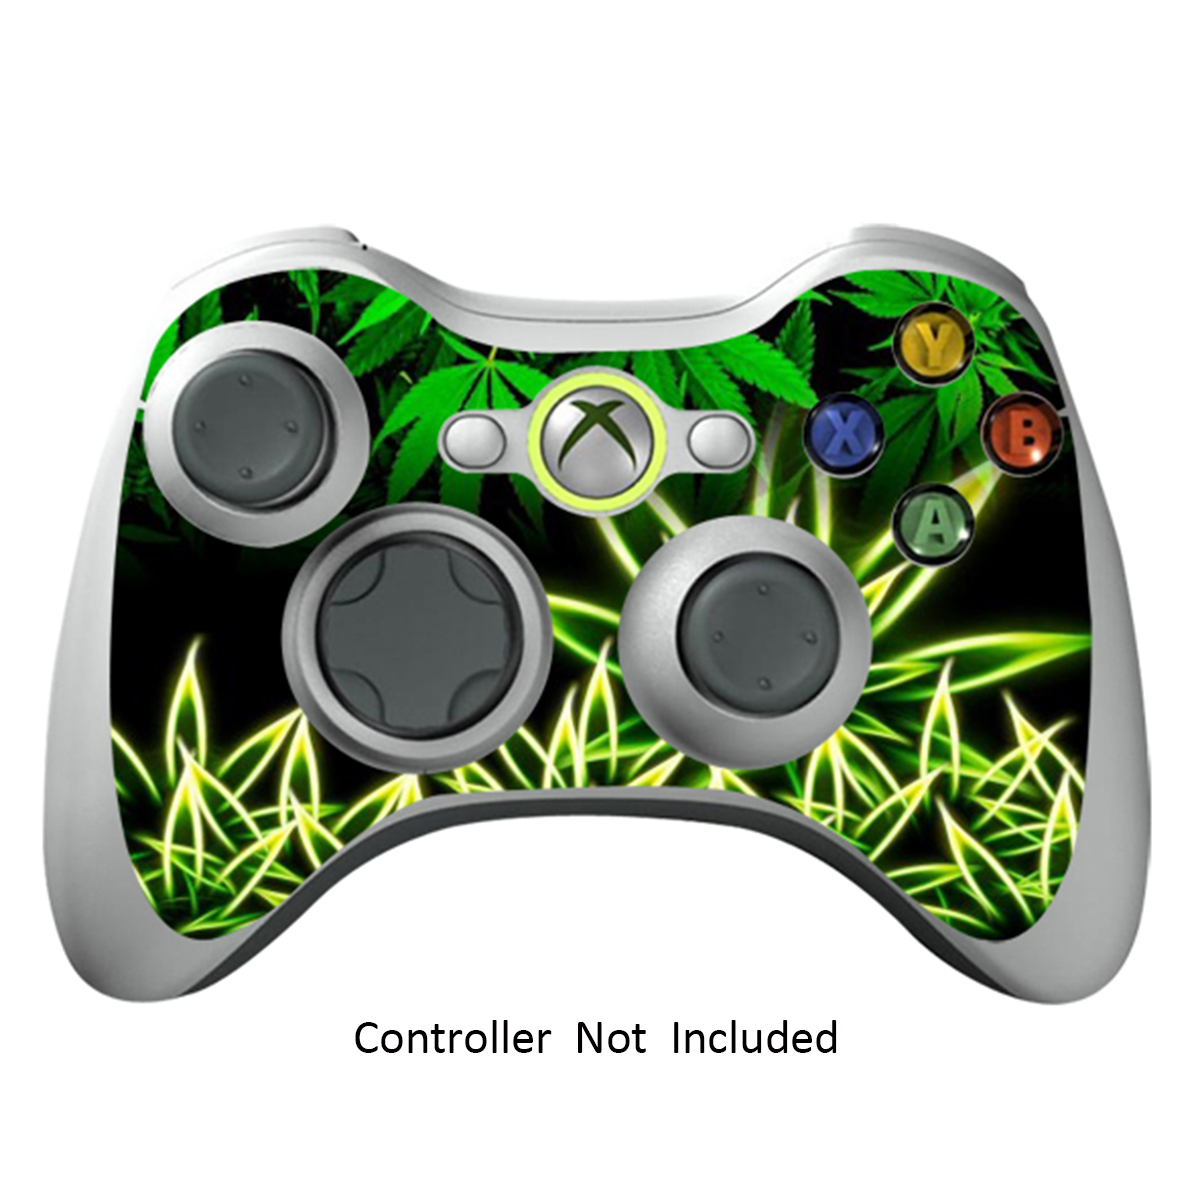 Skin Stickers for Xbox 360 Controller - Vinyl Leather Texture Sticker for X360 Slim Wired Wireless Game Controllers - Protectors Stickers Controller - Weeds Black